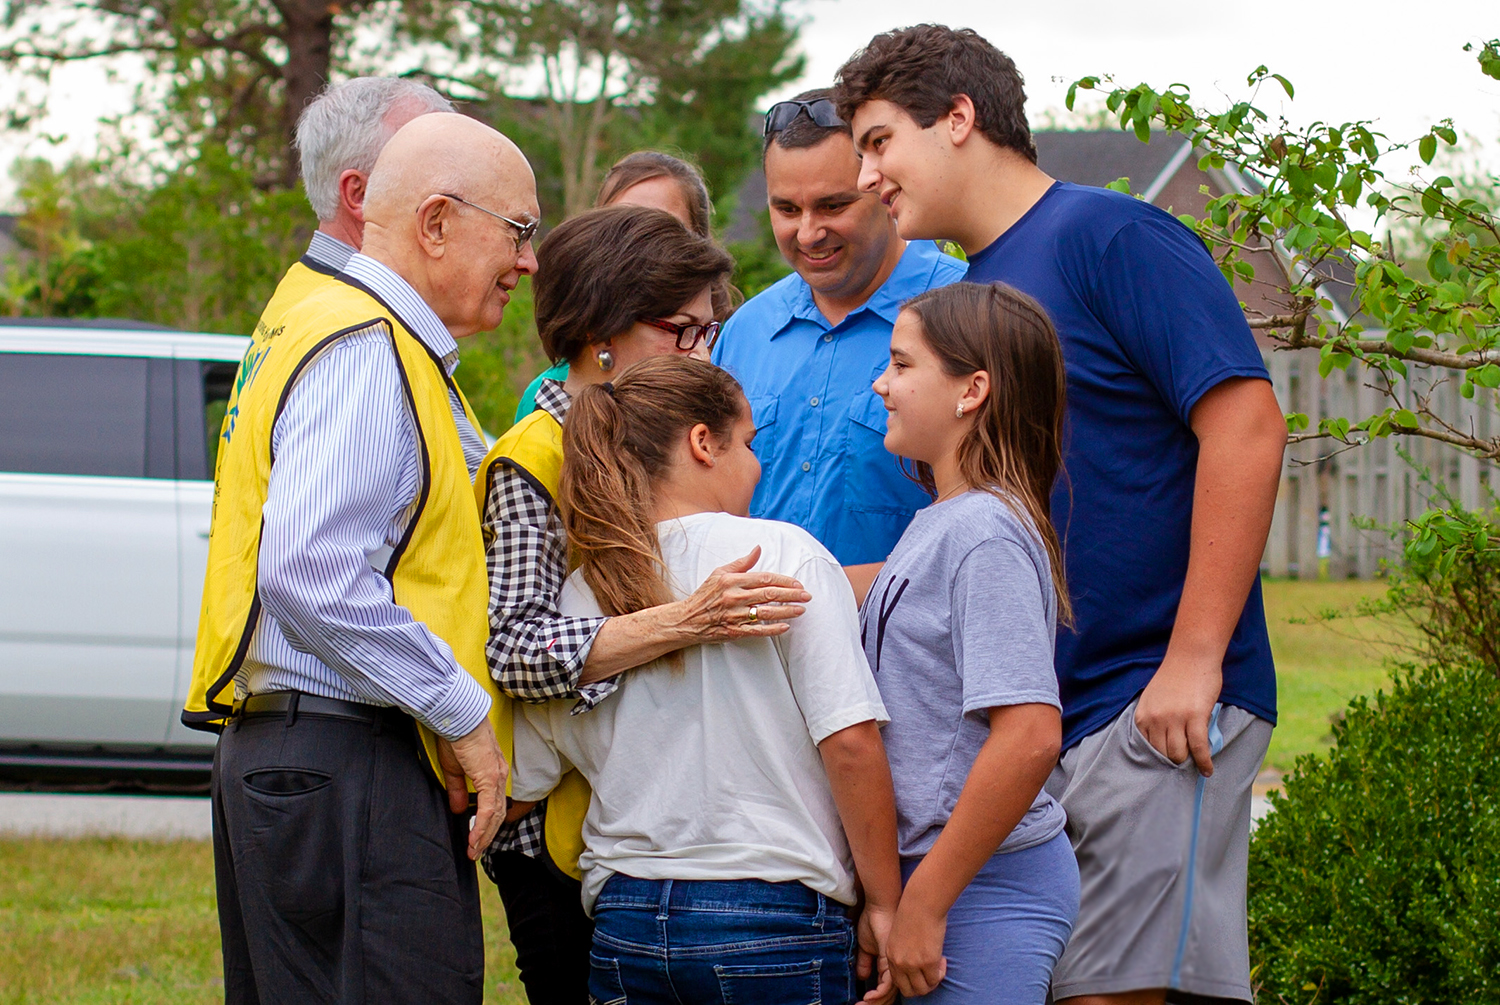 President Dallin H. Oaks, first counselor in the First Presidency of the Church, and his wife, Sister Kristen Oaks, meet with and comfort people impacted by Hurricane Florence a few weeks ago.